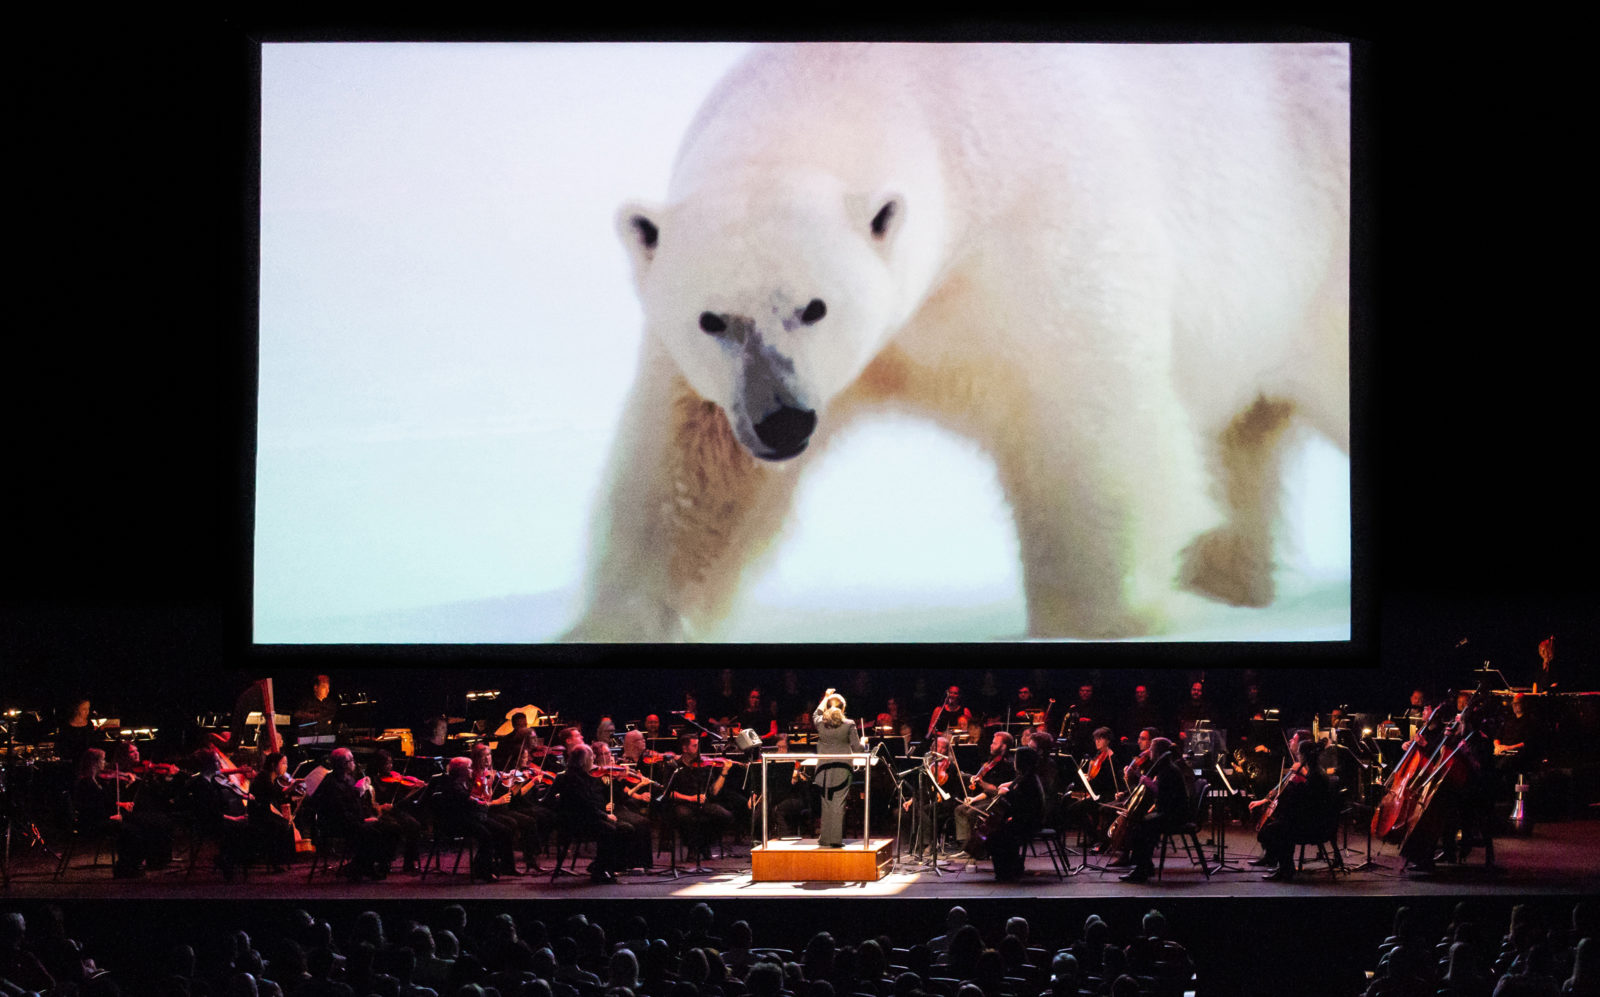 An image of a panda is on the screen that hangs over a live orchestra